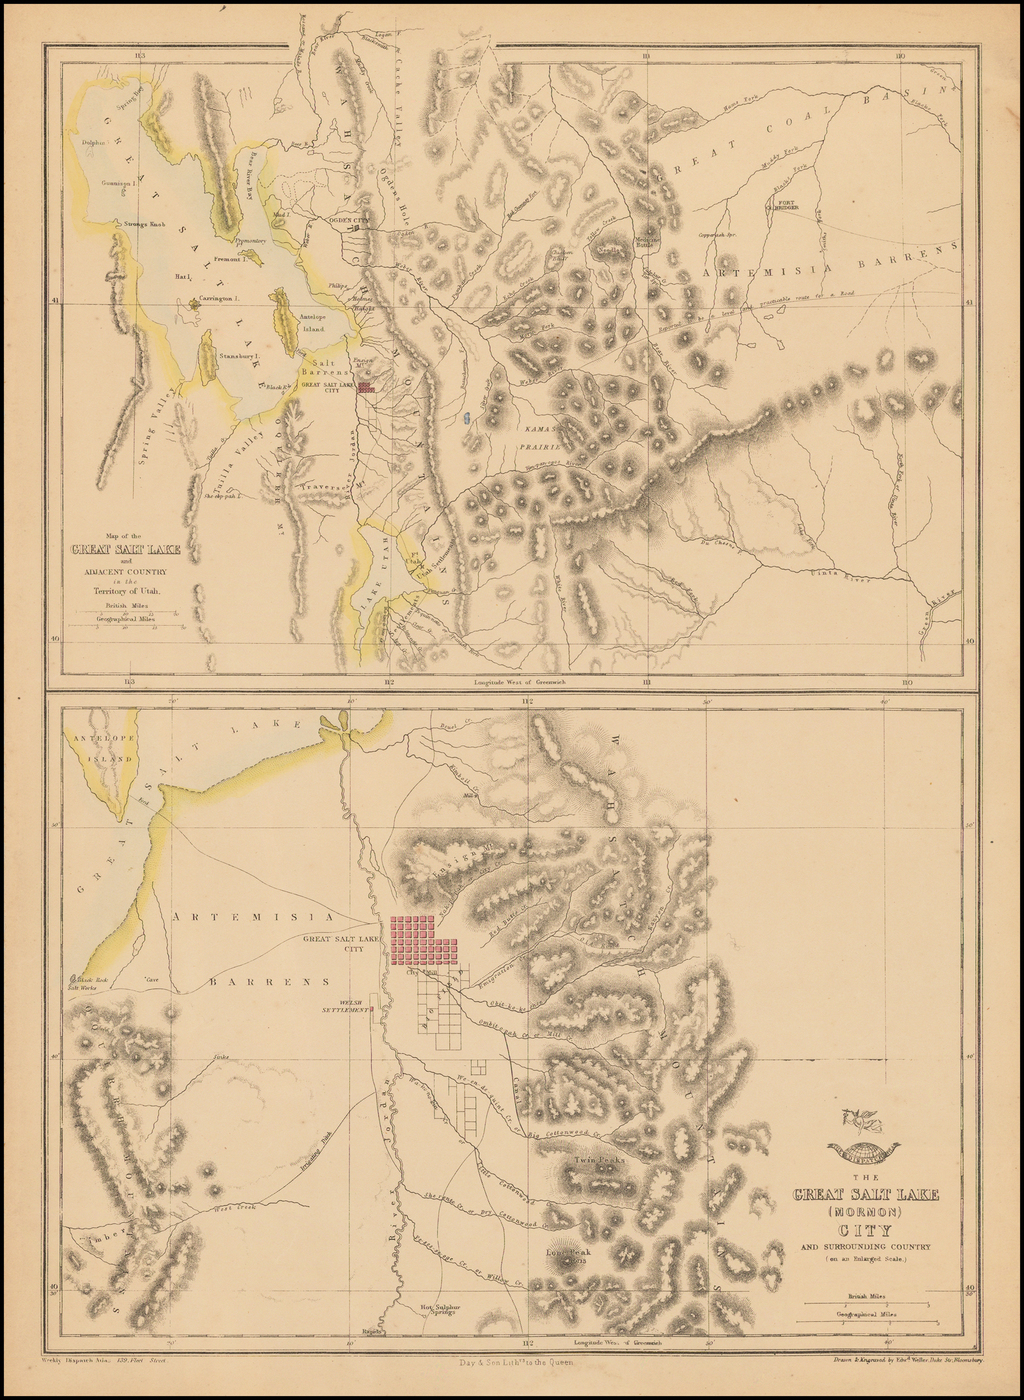 Map of the Great Salt Lake and Adjacent Country in the Territory of Utah [with] The Great Salt Lake (Mormon) City And Surrounding Country By Edward Weller